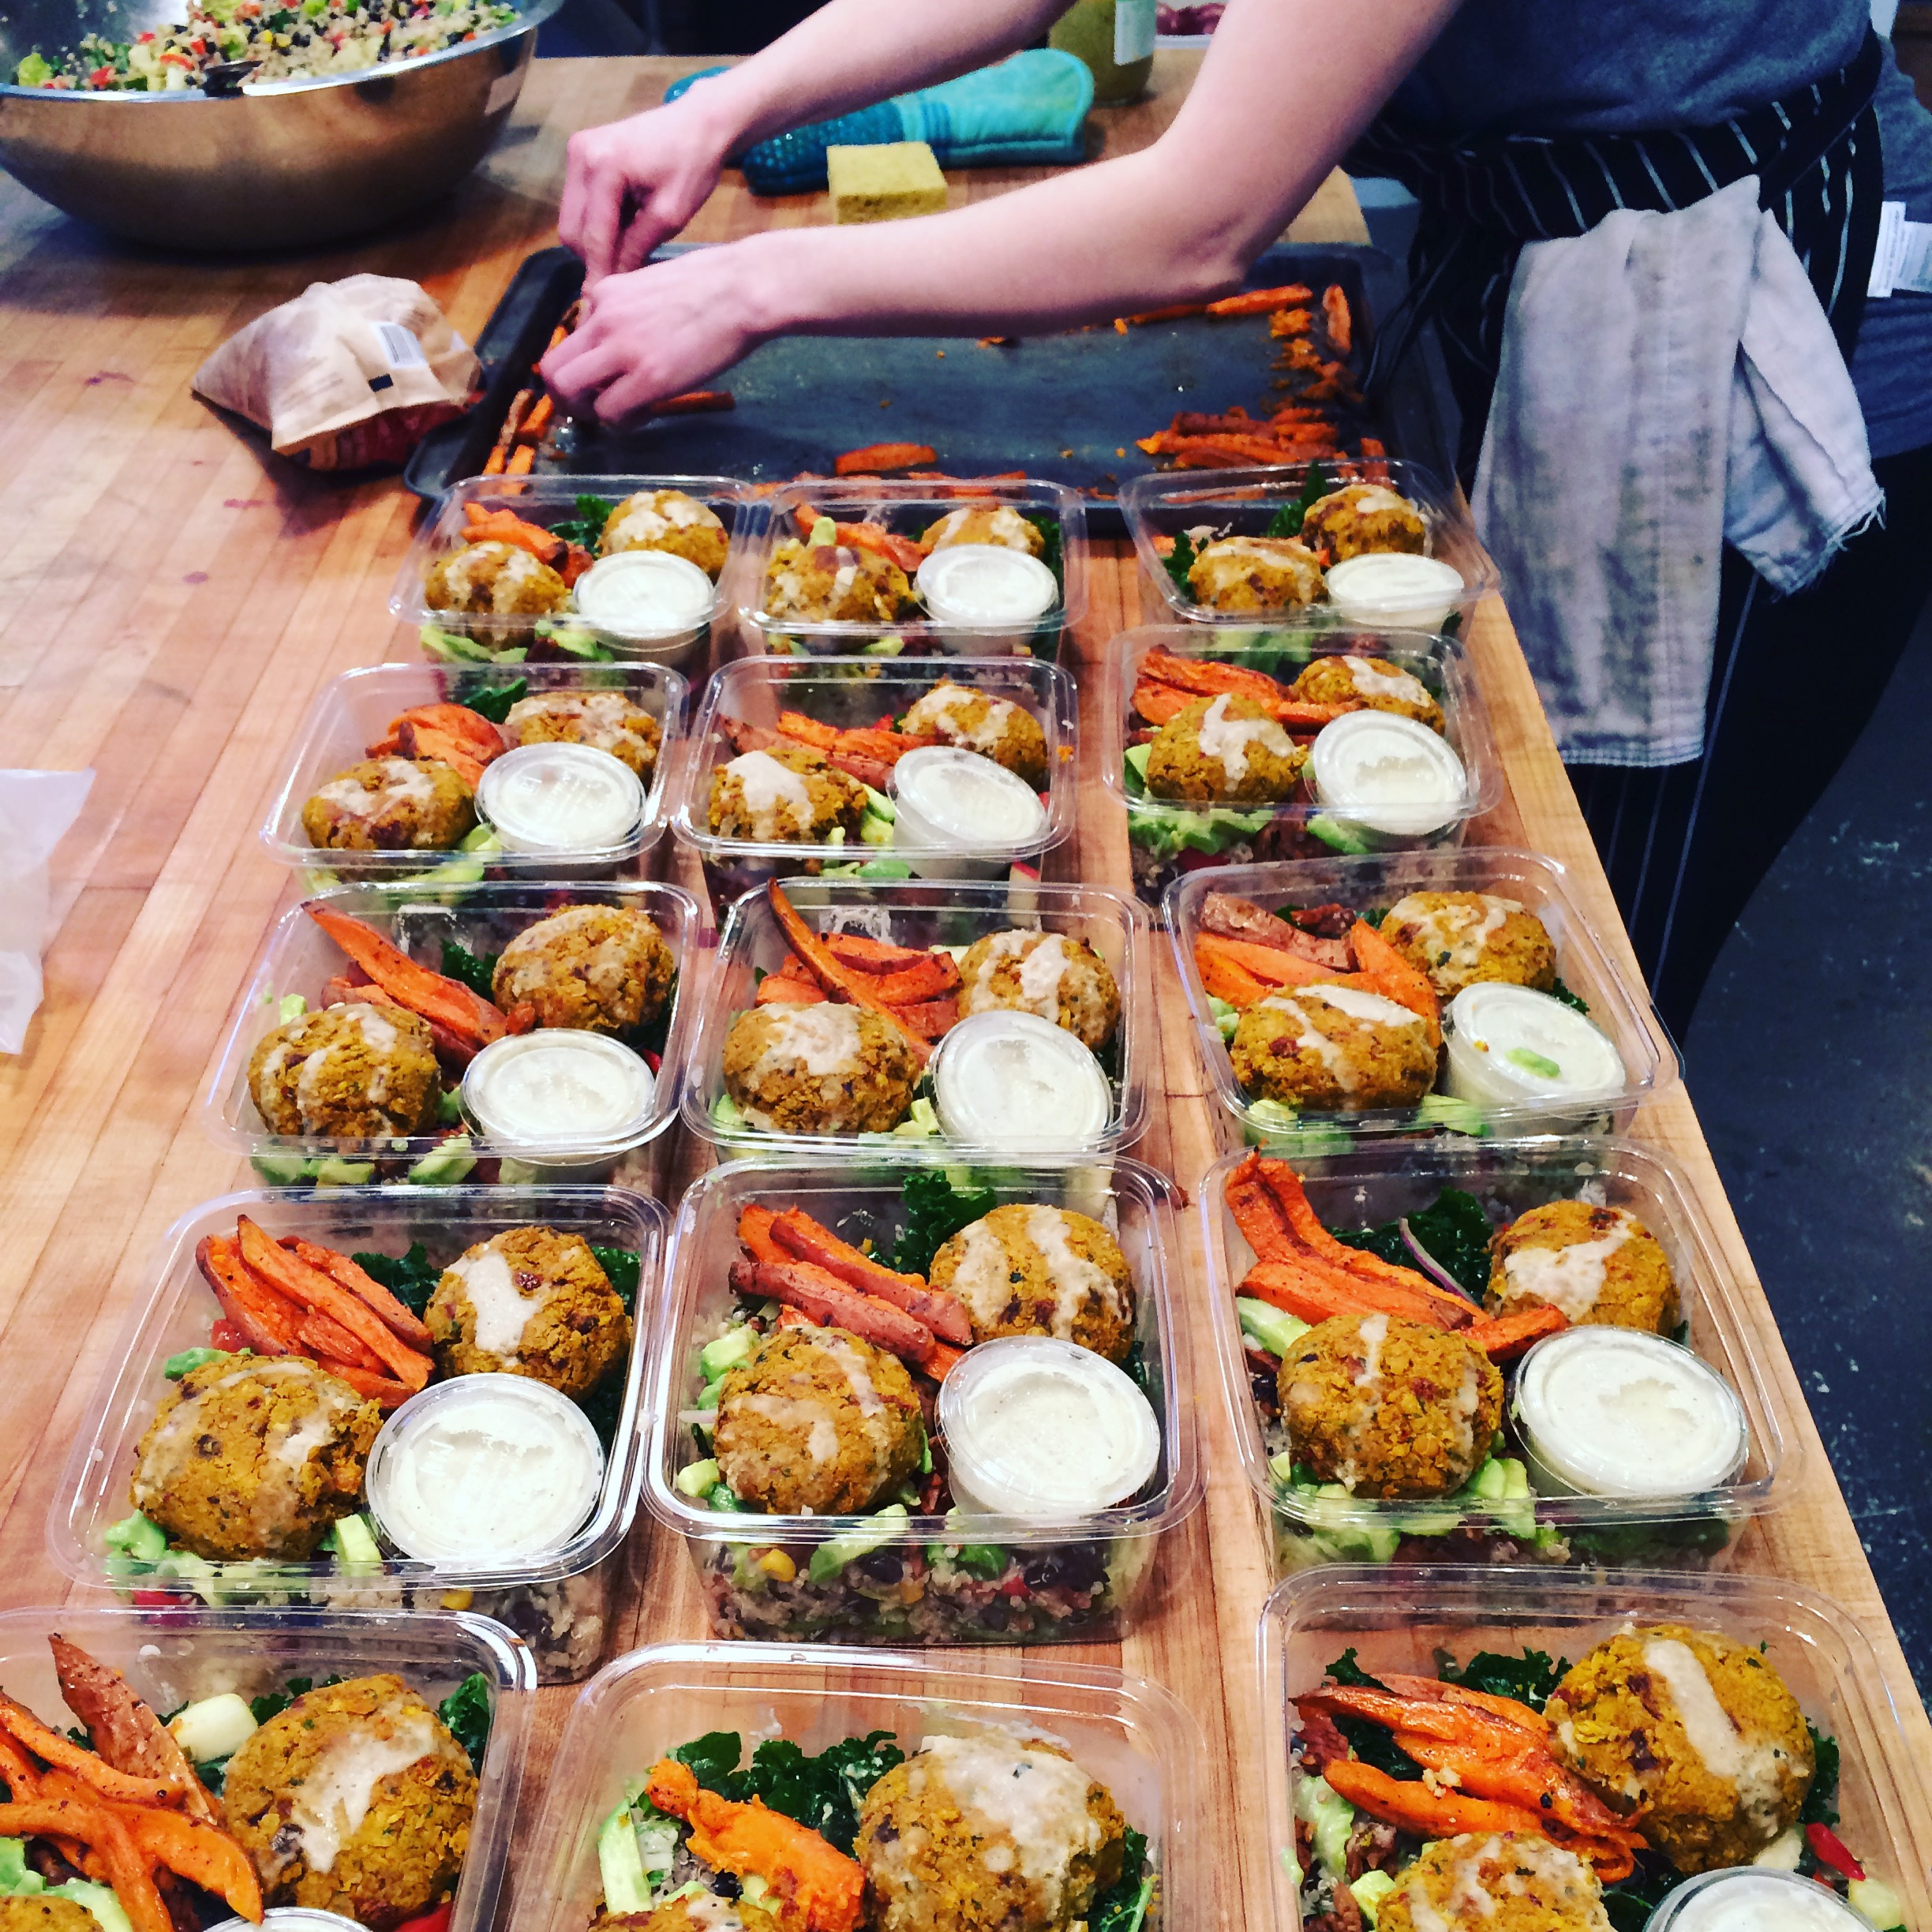 Charmant We Love To Cater Events, Parties, Office Lunches And Special Occasions!  Have A Look At Our Instagram Hashtag For Some Ideas: #fggcatering